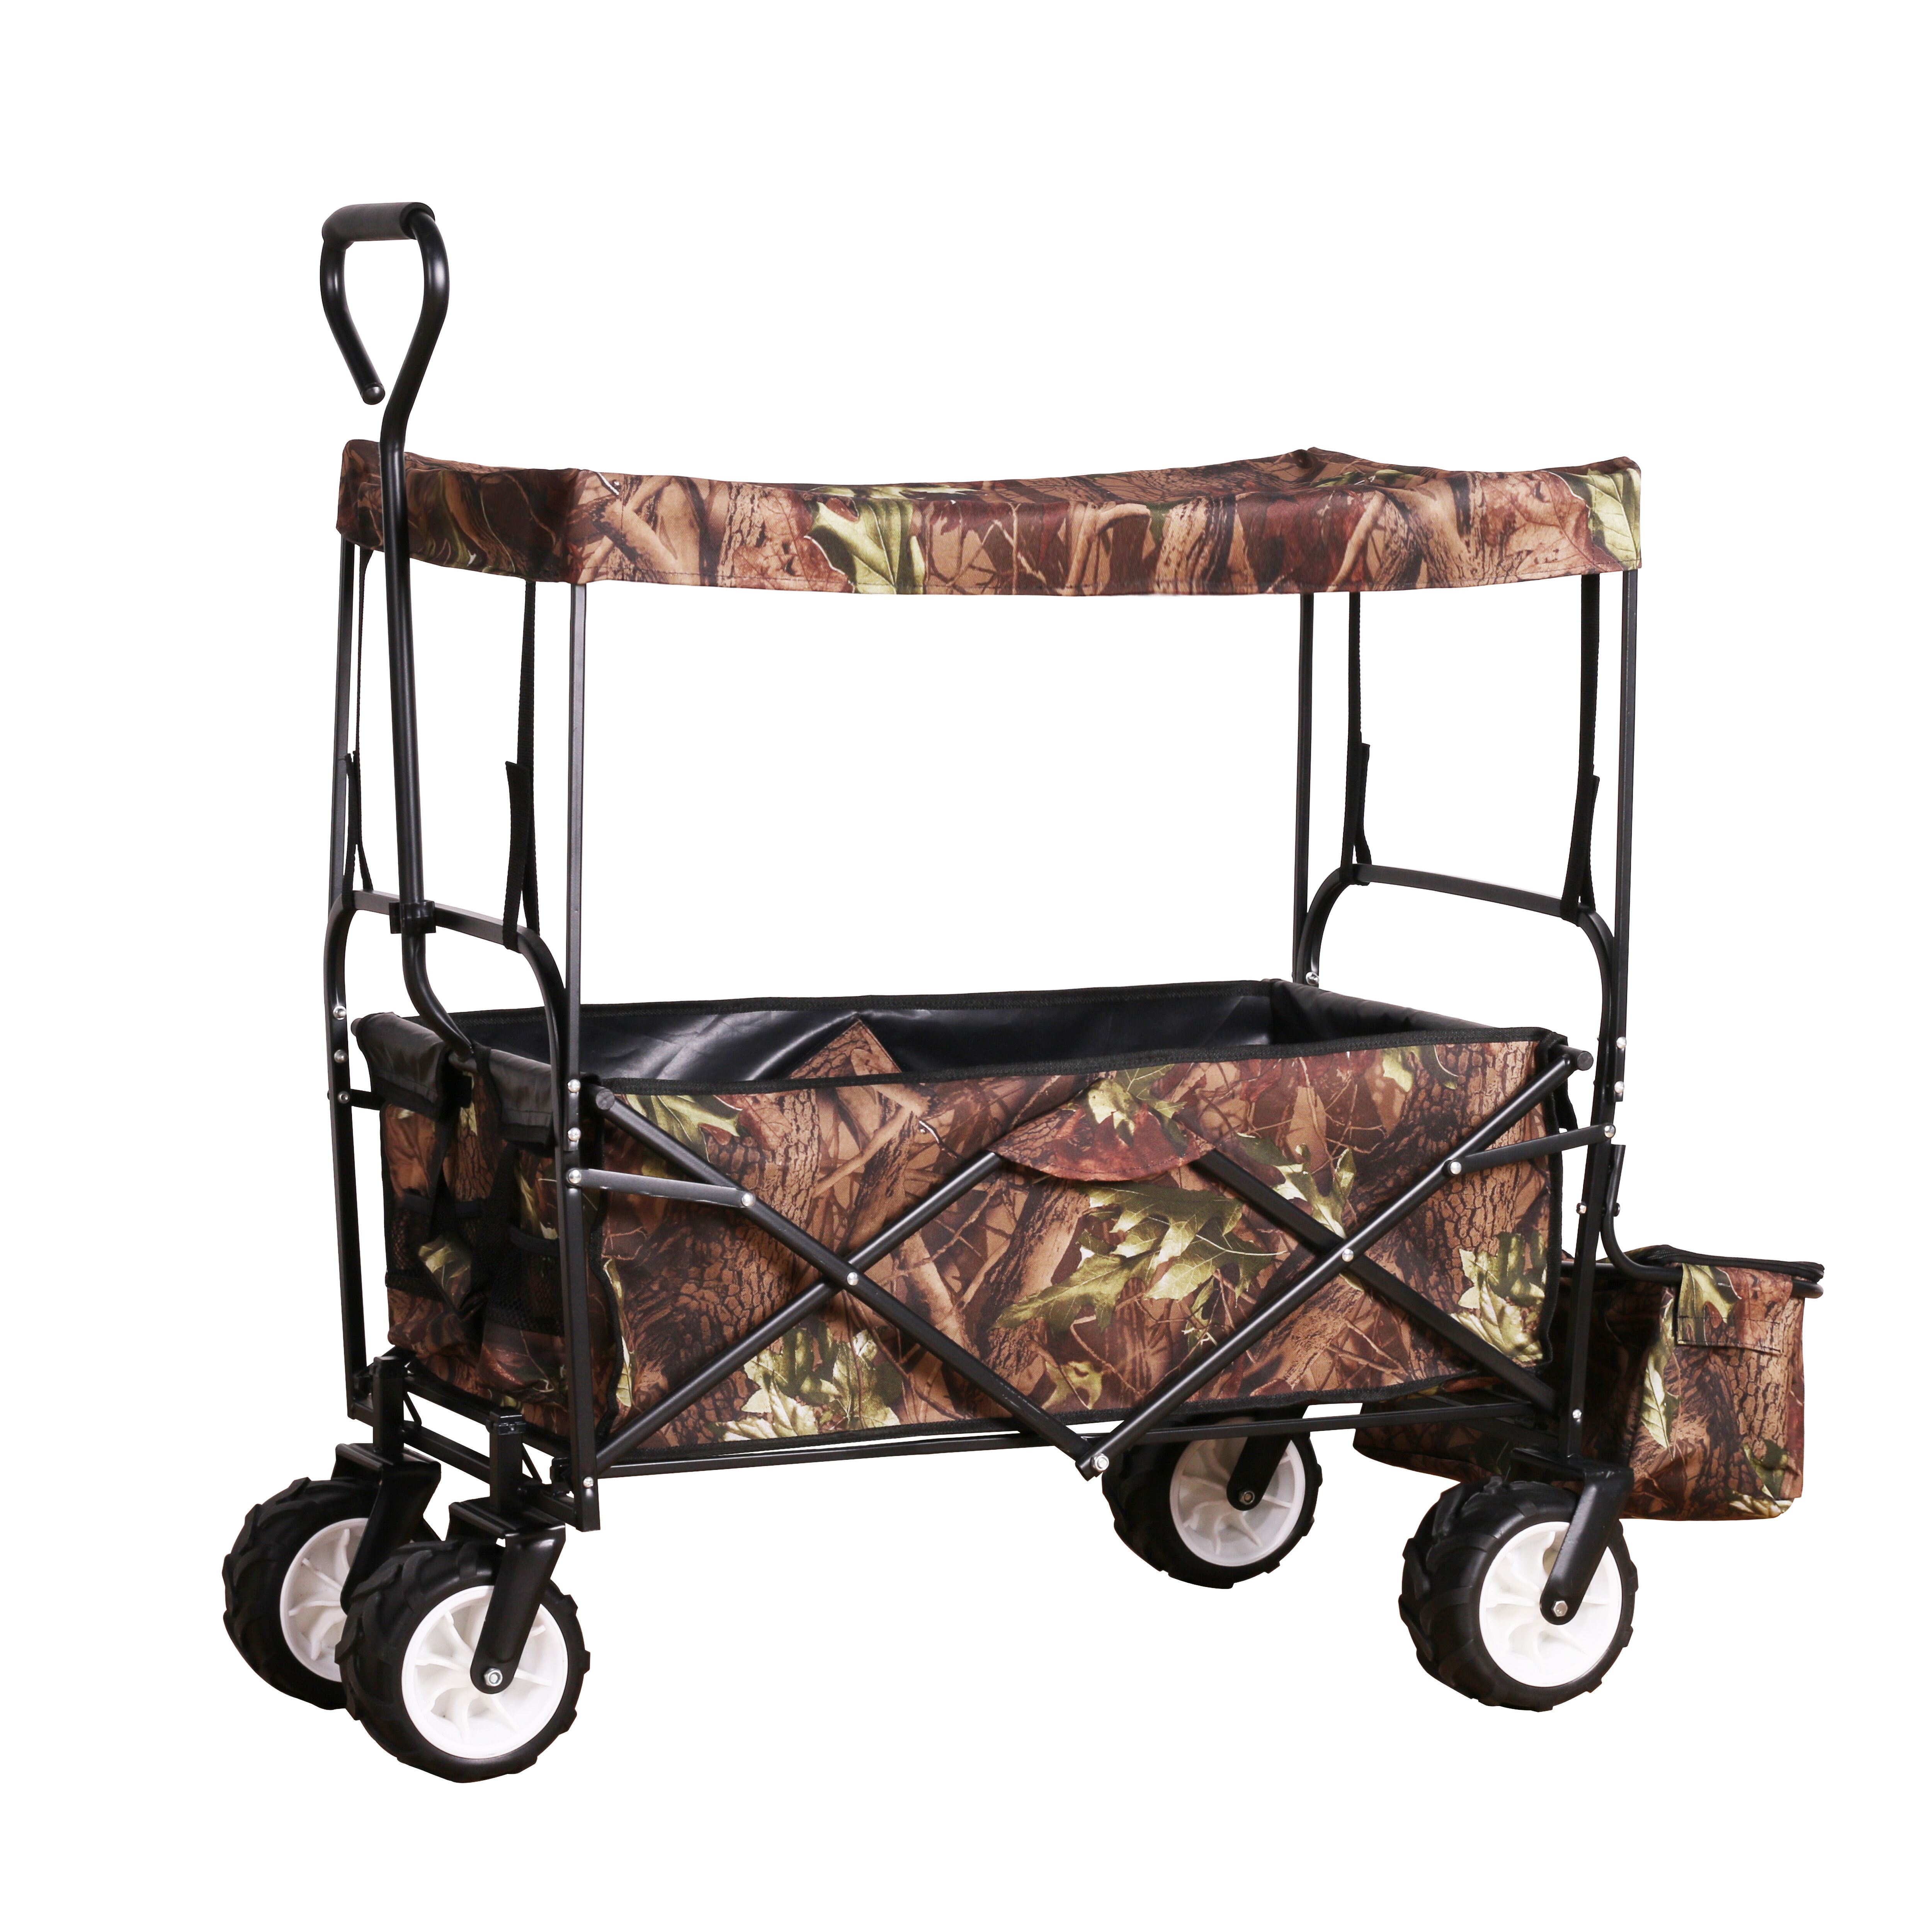 Unique Imports All Terrain Steel And Wood Pull Cart Wagon For Kids W Extra Large 10 Air Tires For Hauling Heavy Duty Country Model 300lb Load Capacity Pull Along Wagons Toys Games